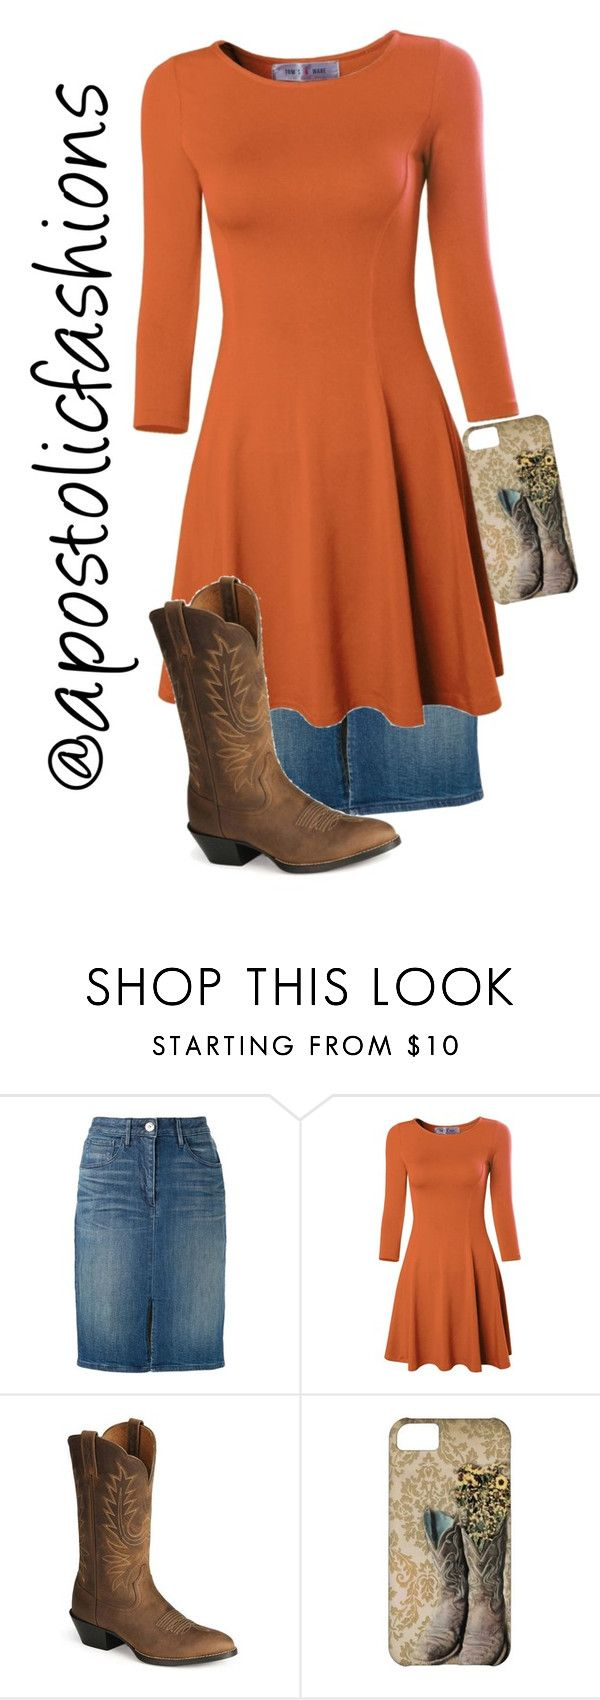 """""""Apostolic Fashions #1407"""" by apostolicfashions on Polyvore featuring 3x1 and Ariat"""